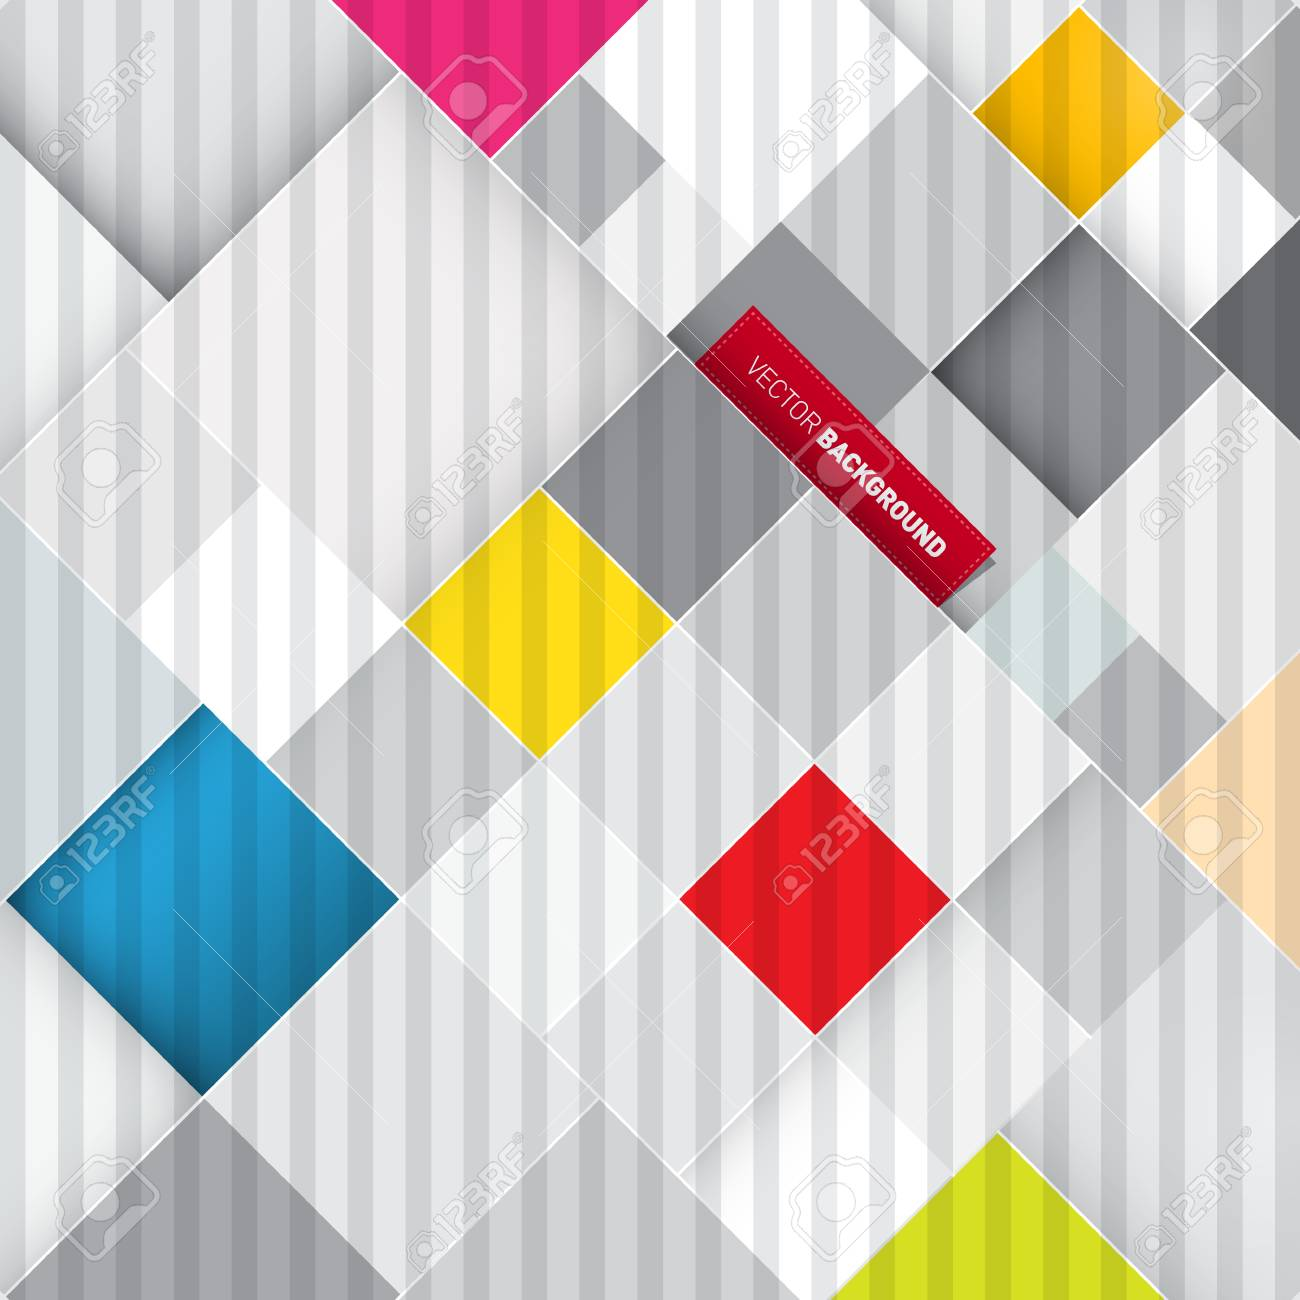 Abstract Retro Colorful Square Background Stock Vector - 23965375